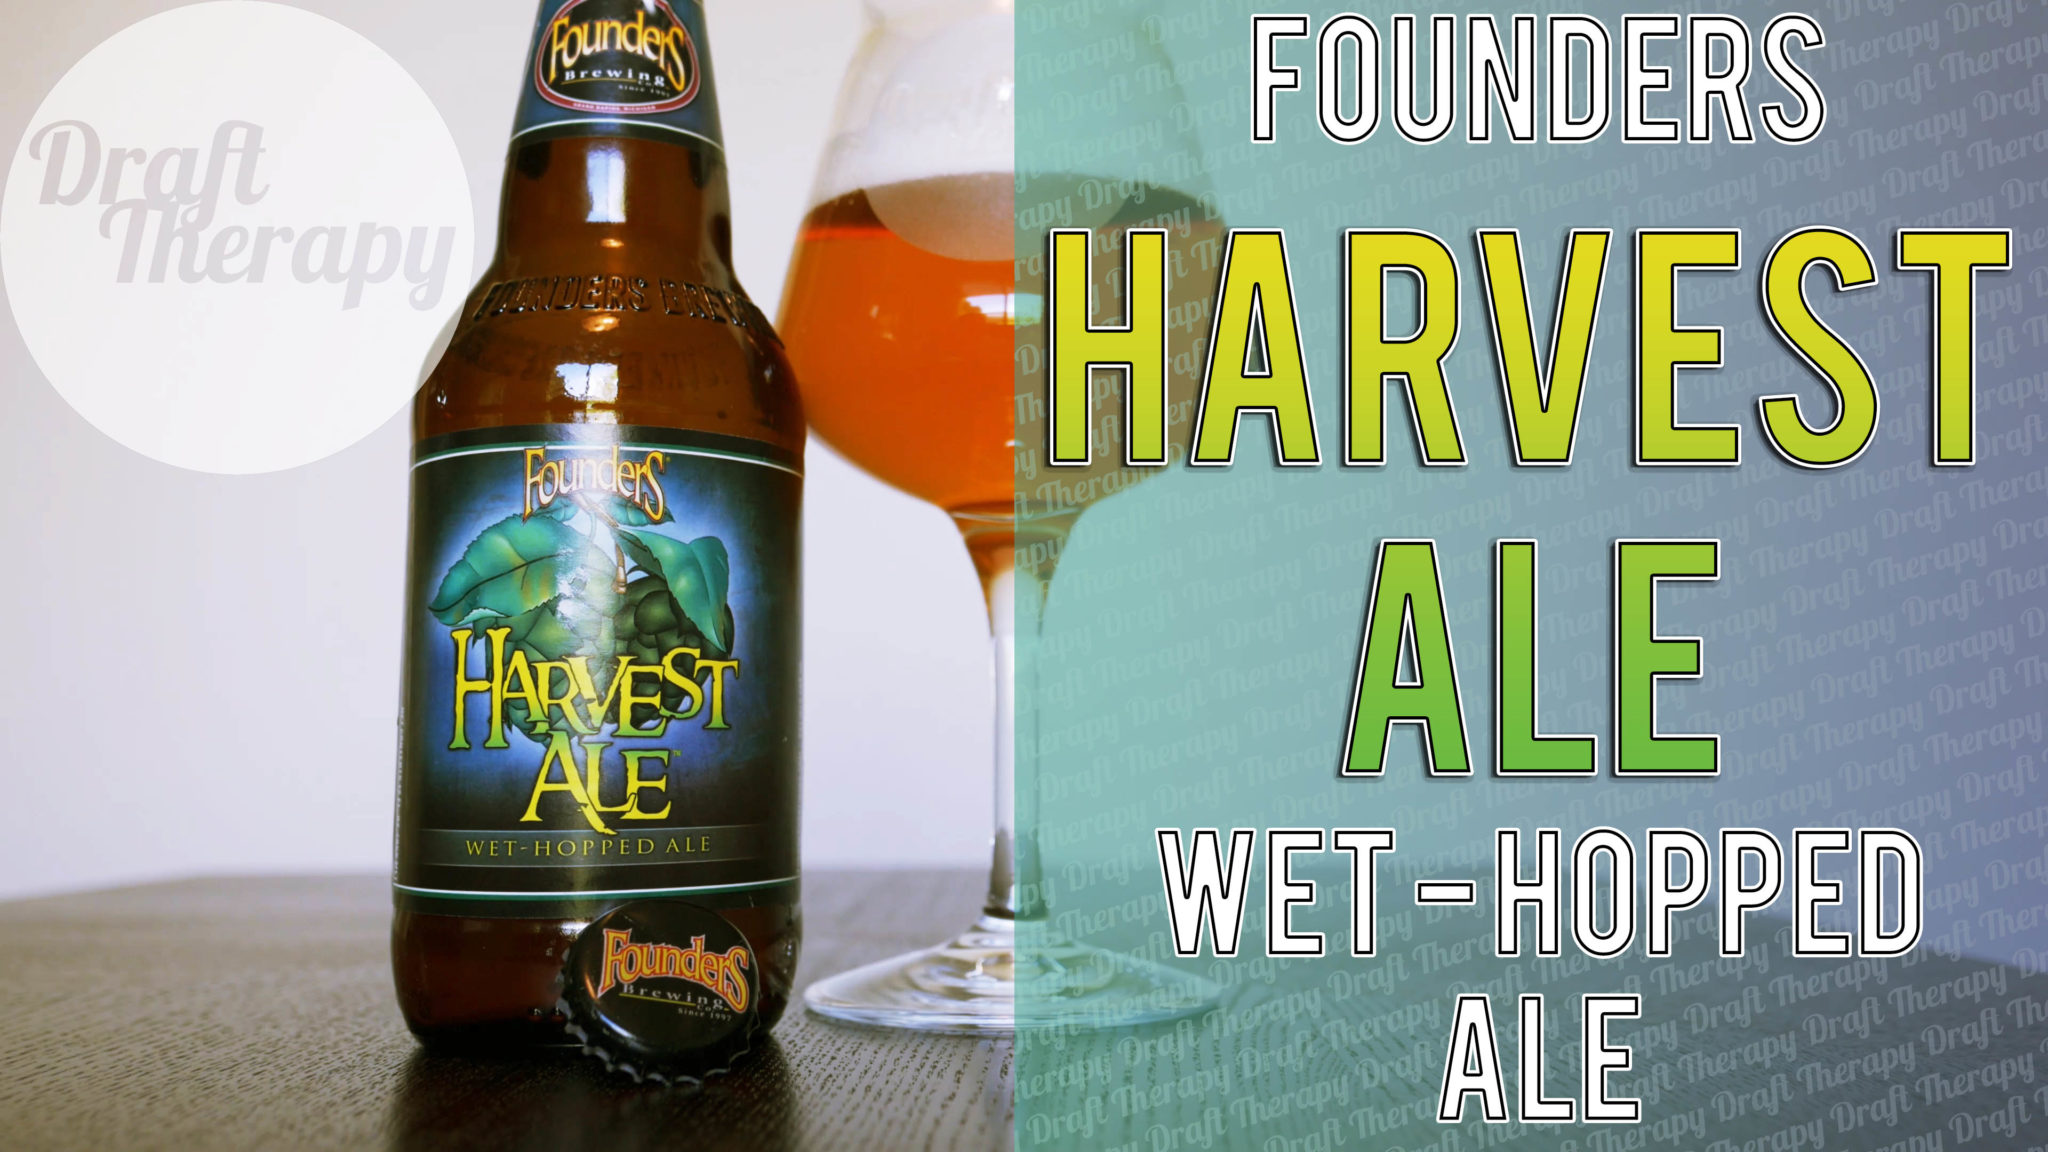 Founders Harvest Ale – A Wet-Hopped IPA